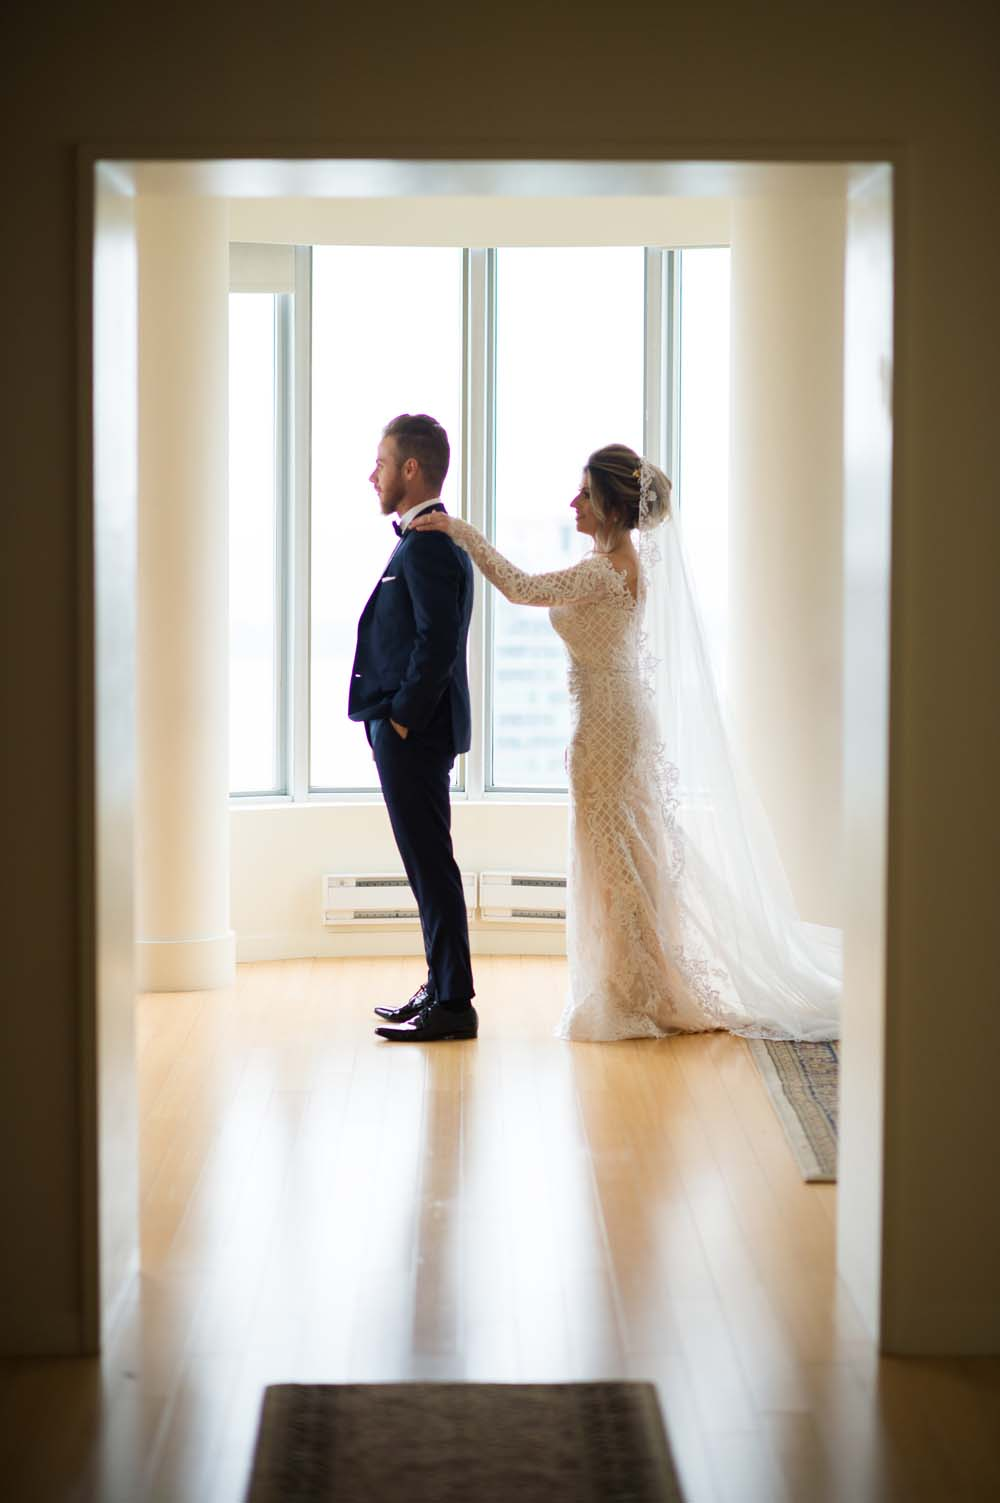 A Classic Vintage inspired Wedding at the One King West in Toronto - Bride and Groom